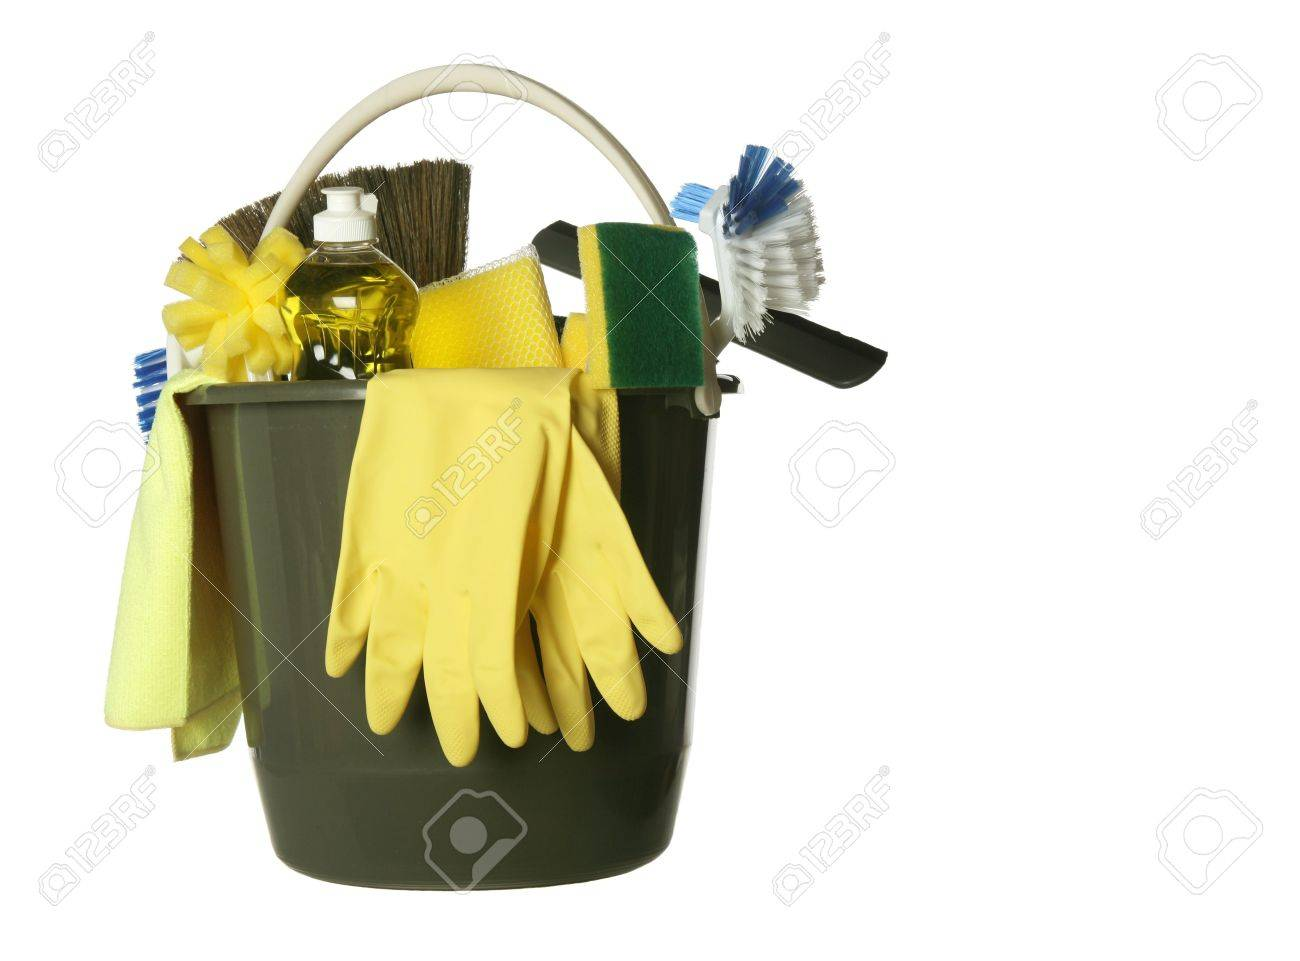 Plastic bucket with cleaning supplies isolated on white background Stock Photo - 4262059